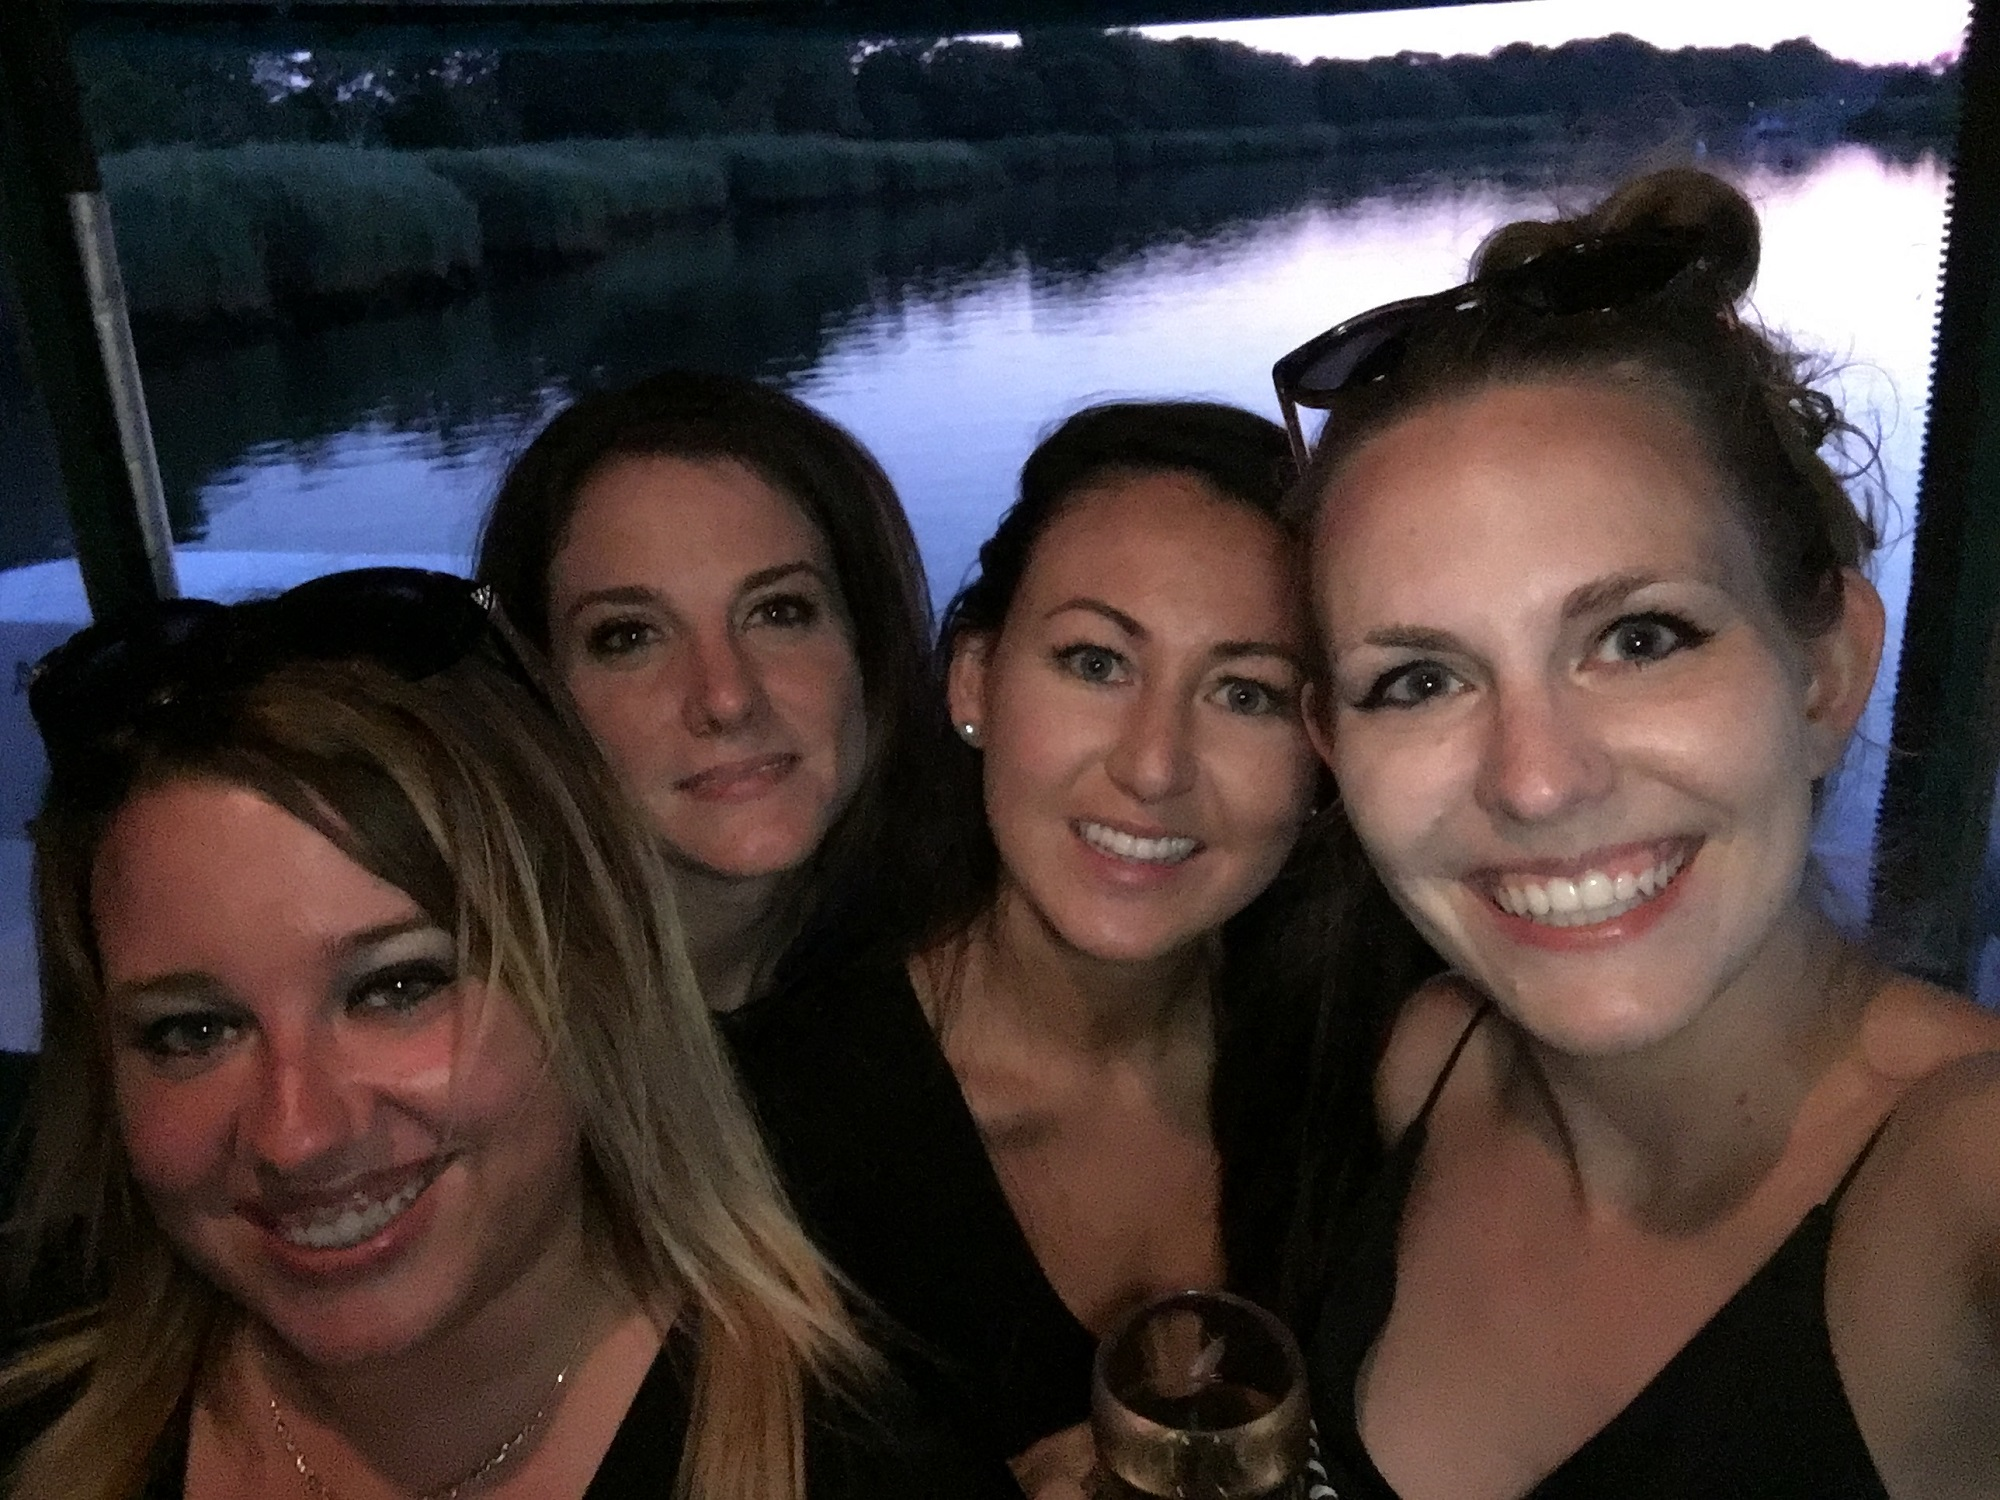 Four girls on the Moonlight Cruise taking a selfie during the sunset.